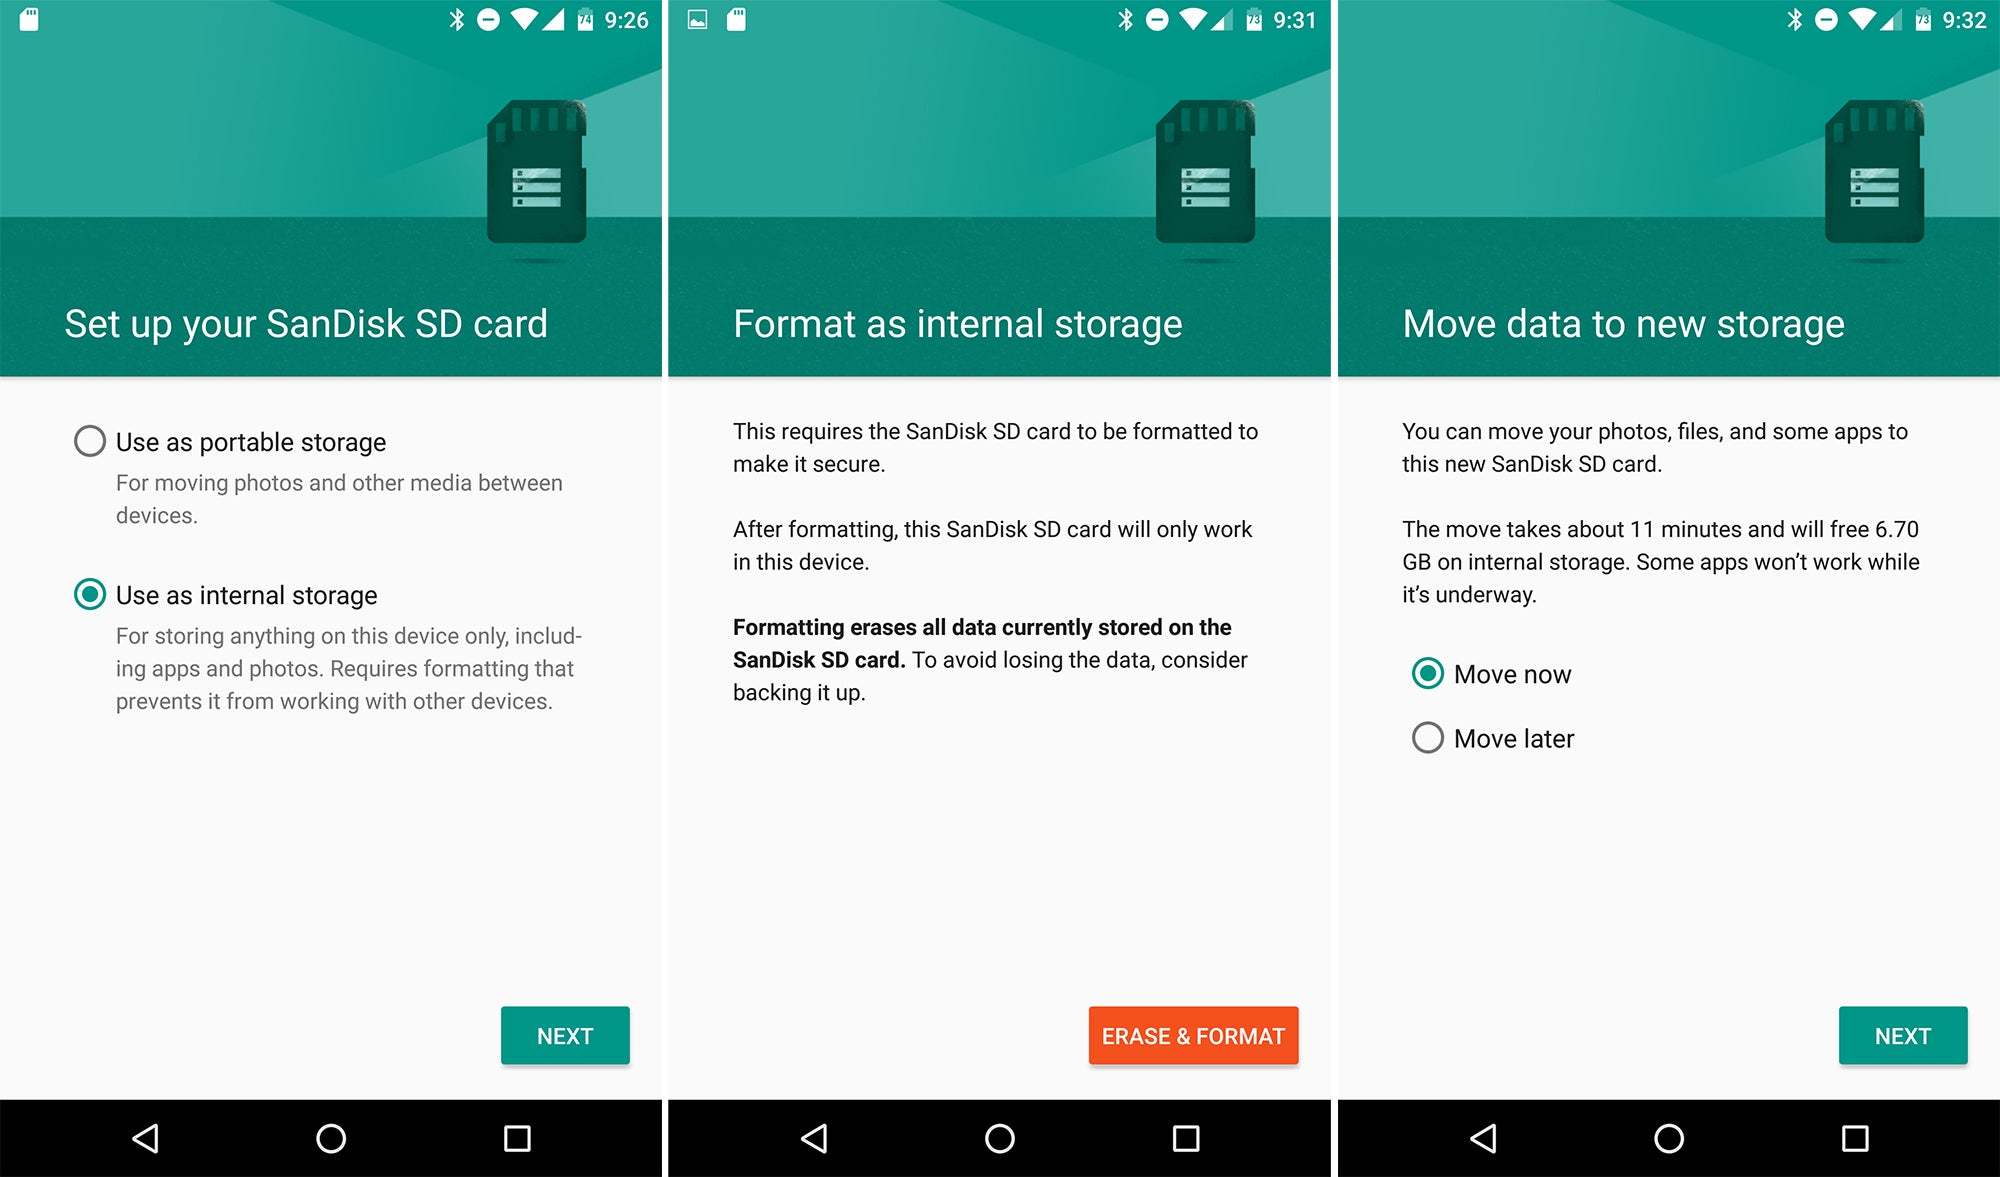 adoptable storage in android 6.0: what it is, how it works | greenbot